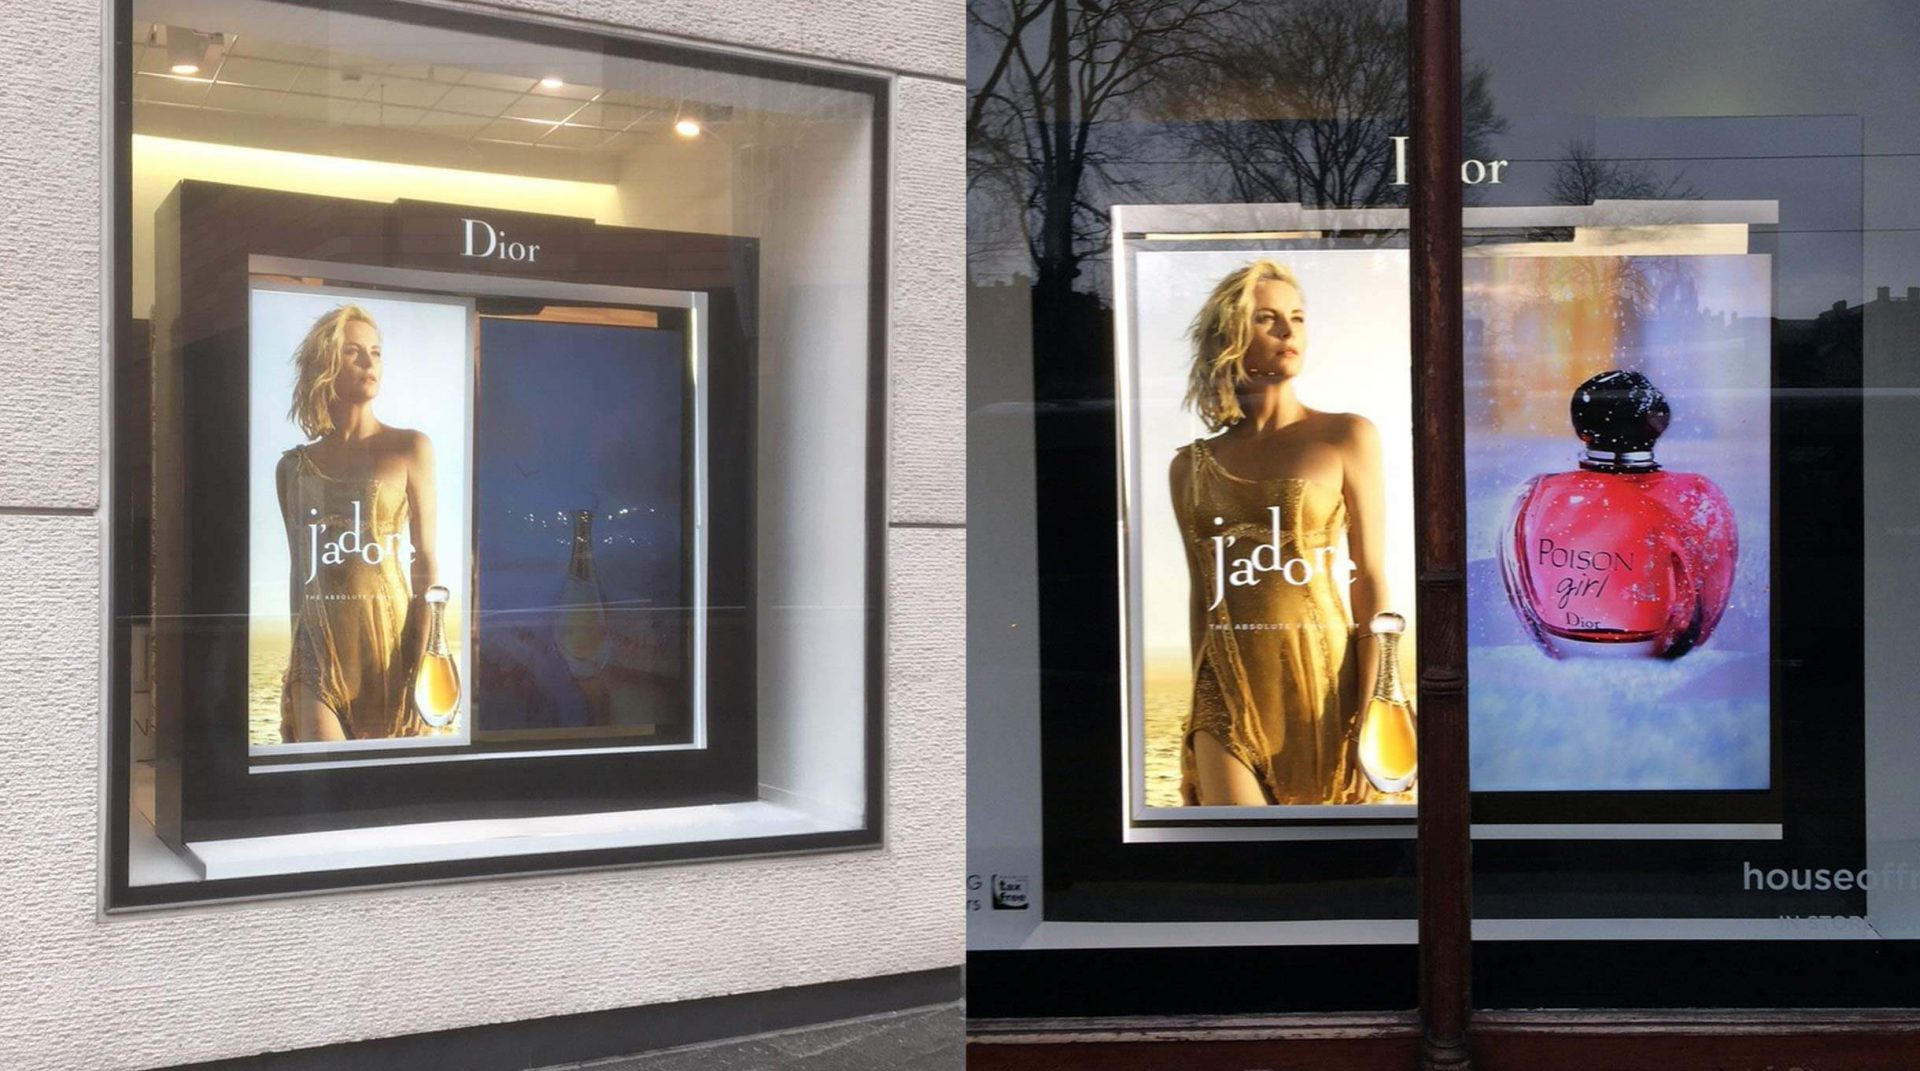 Dior J'ador Window Display